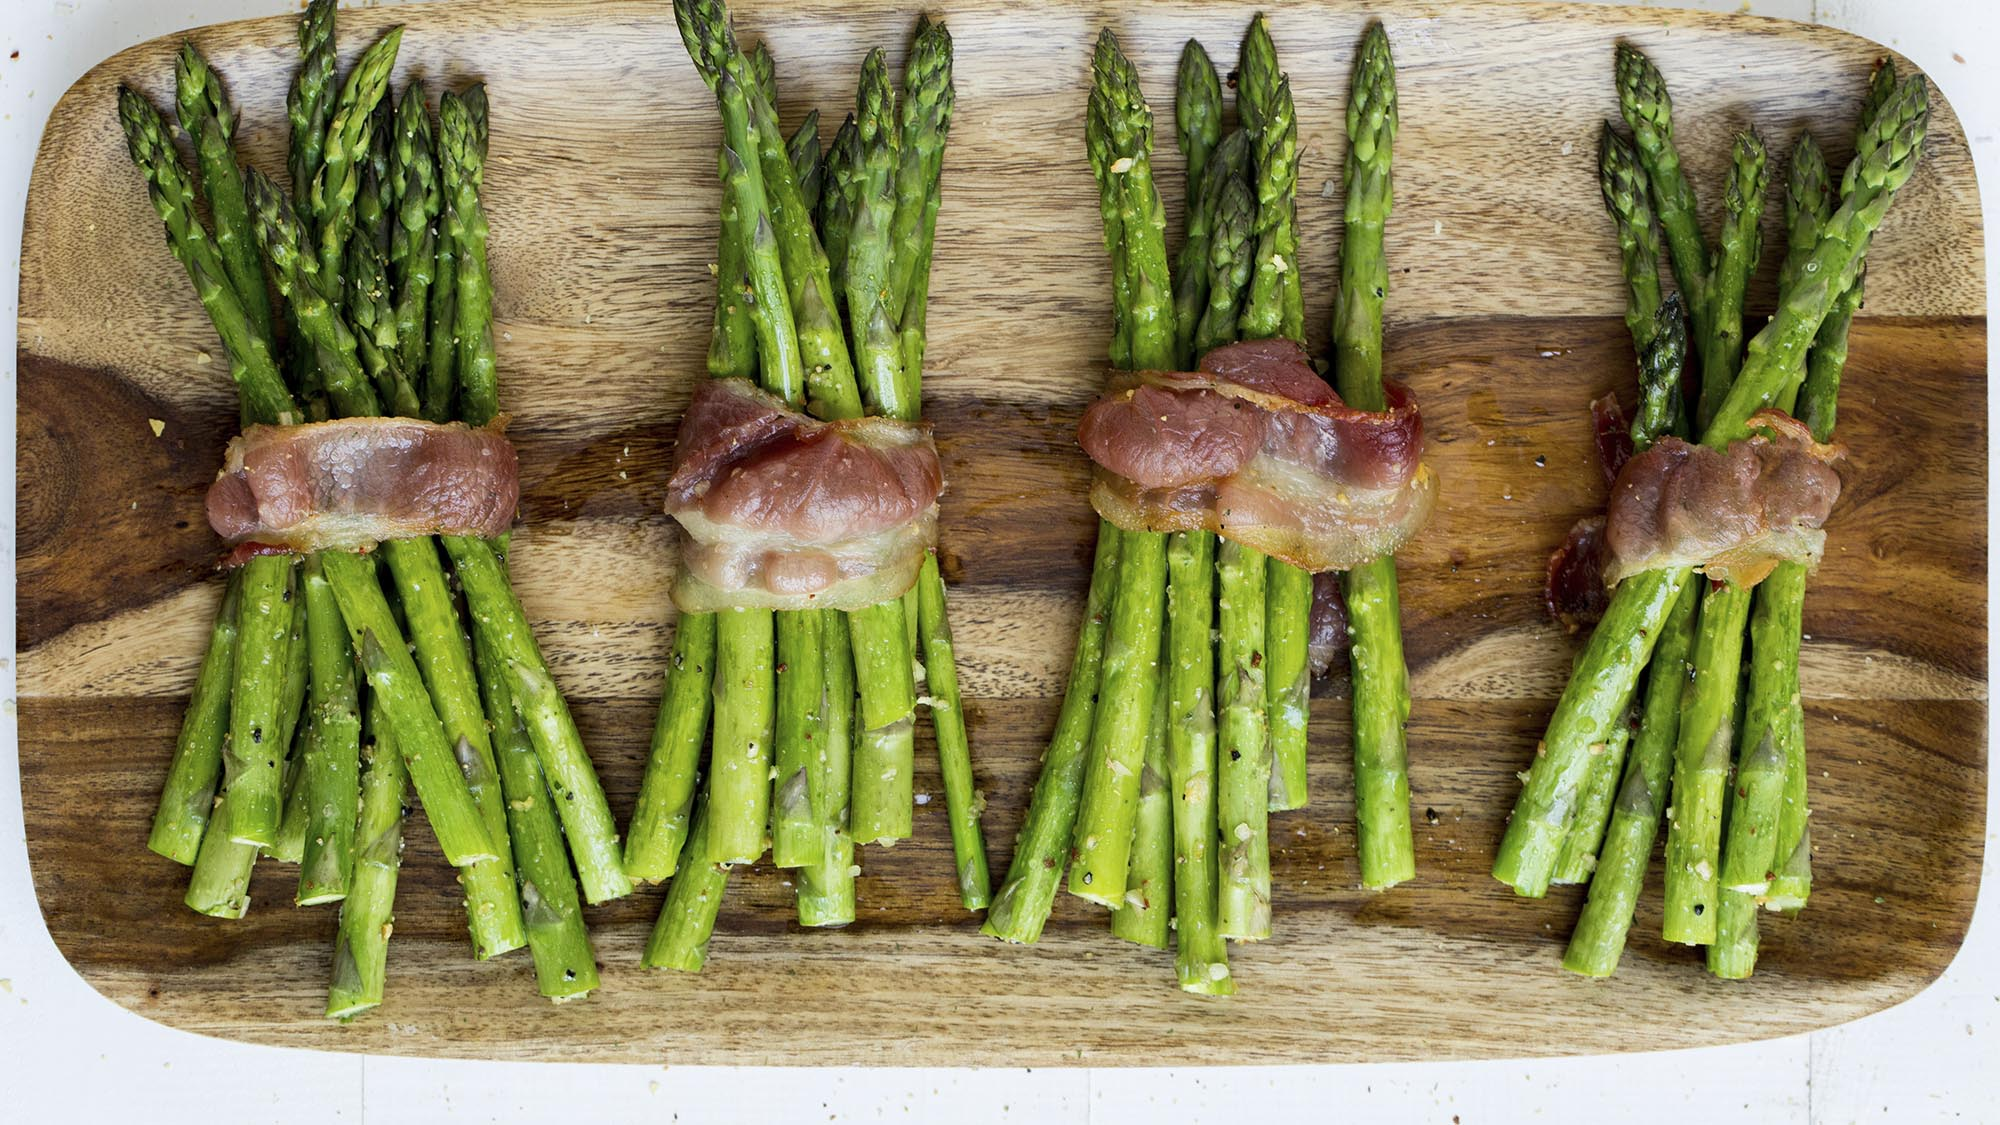 McCormick Grill Mates Brown Sugar Bourbon Bacon Wrapped Grilled Asparagus